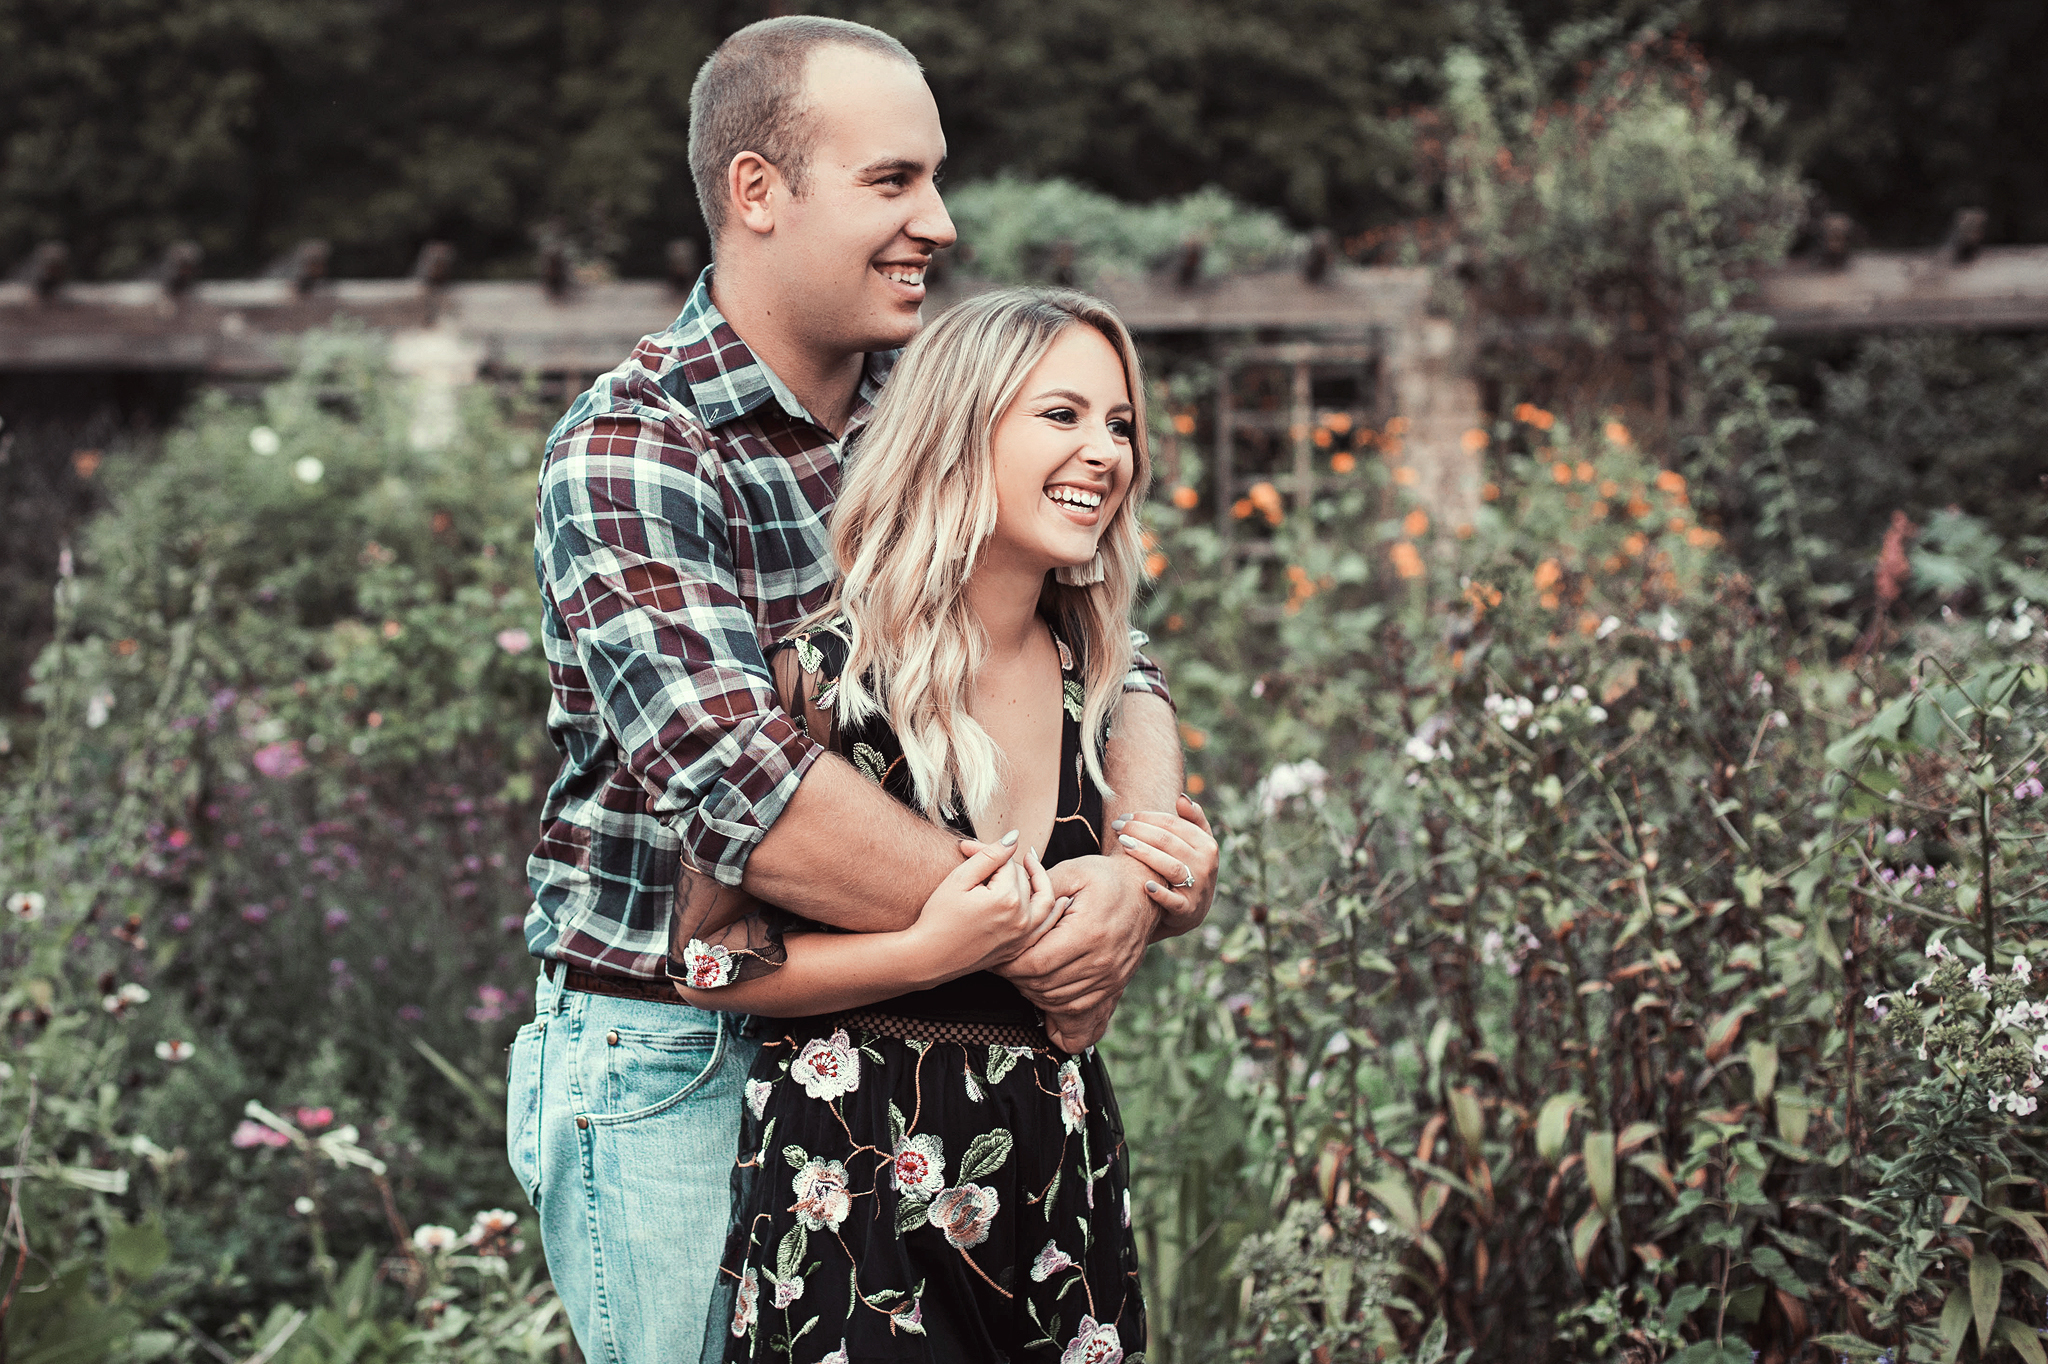 Cincinnati-Dayton-Based-Engagement-Photography-Traveling-Wedding-Photographer-7.jpg